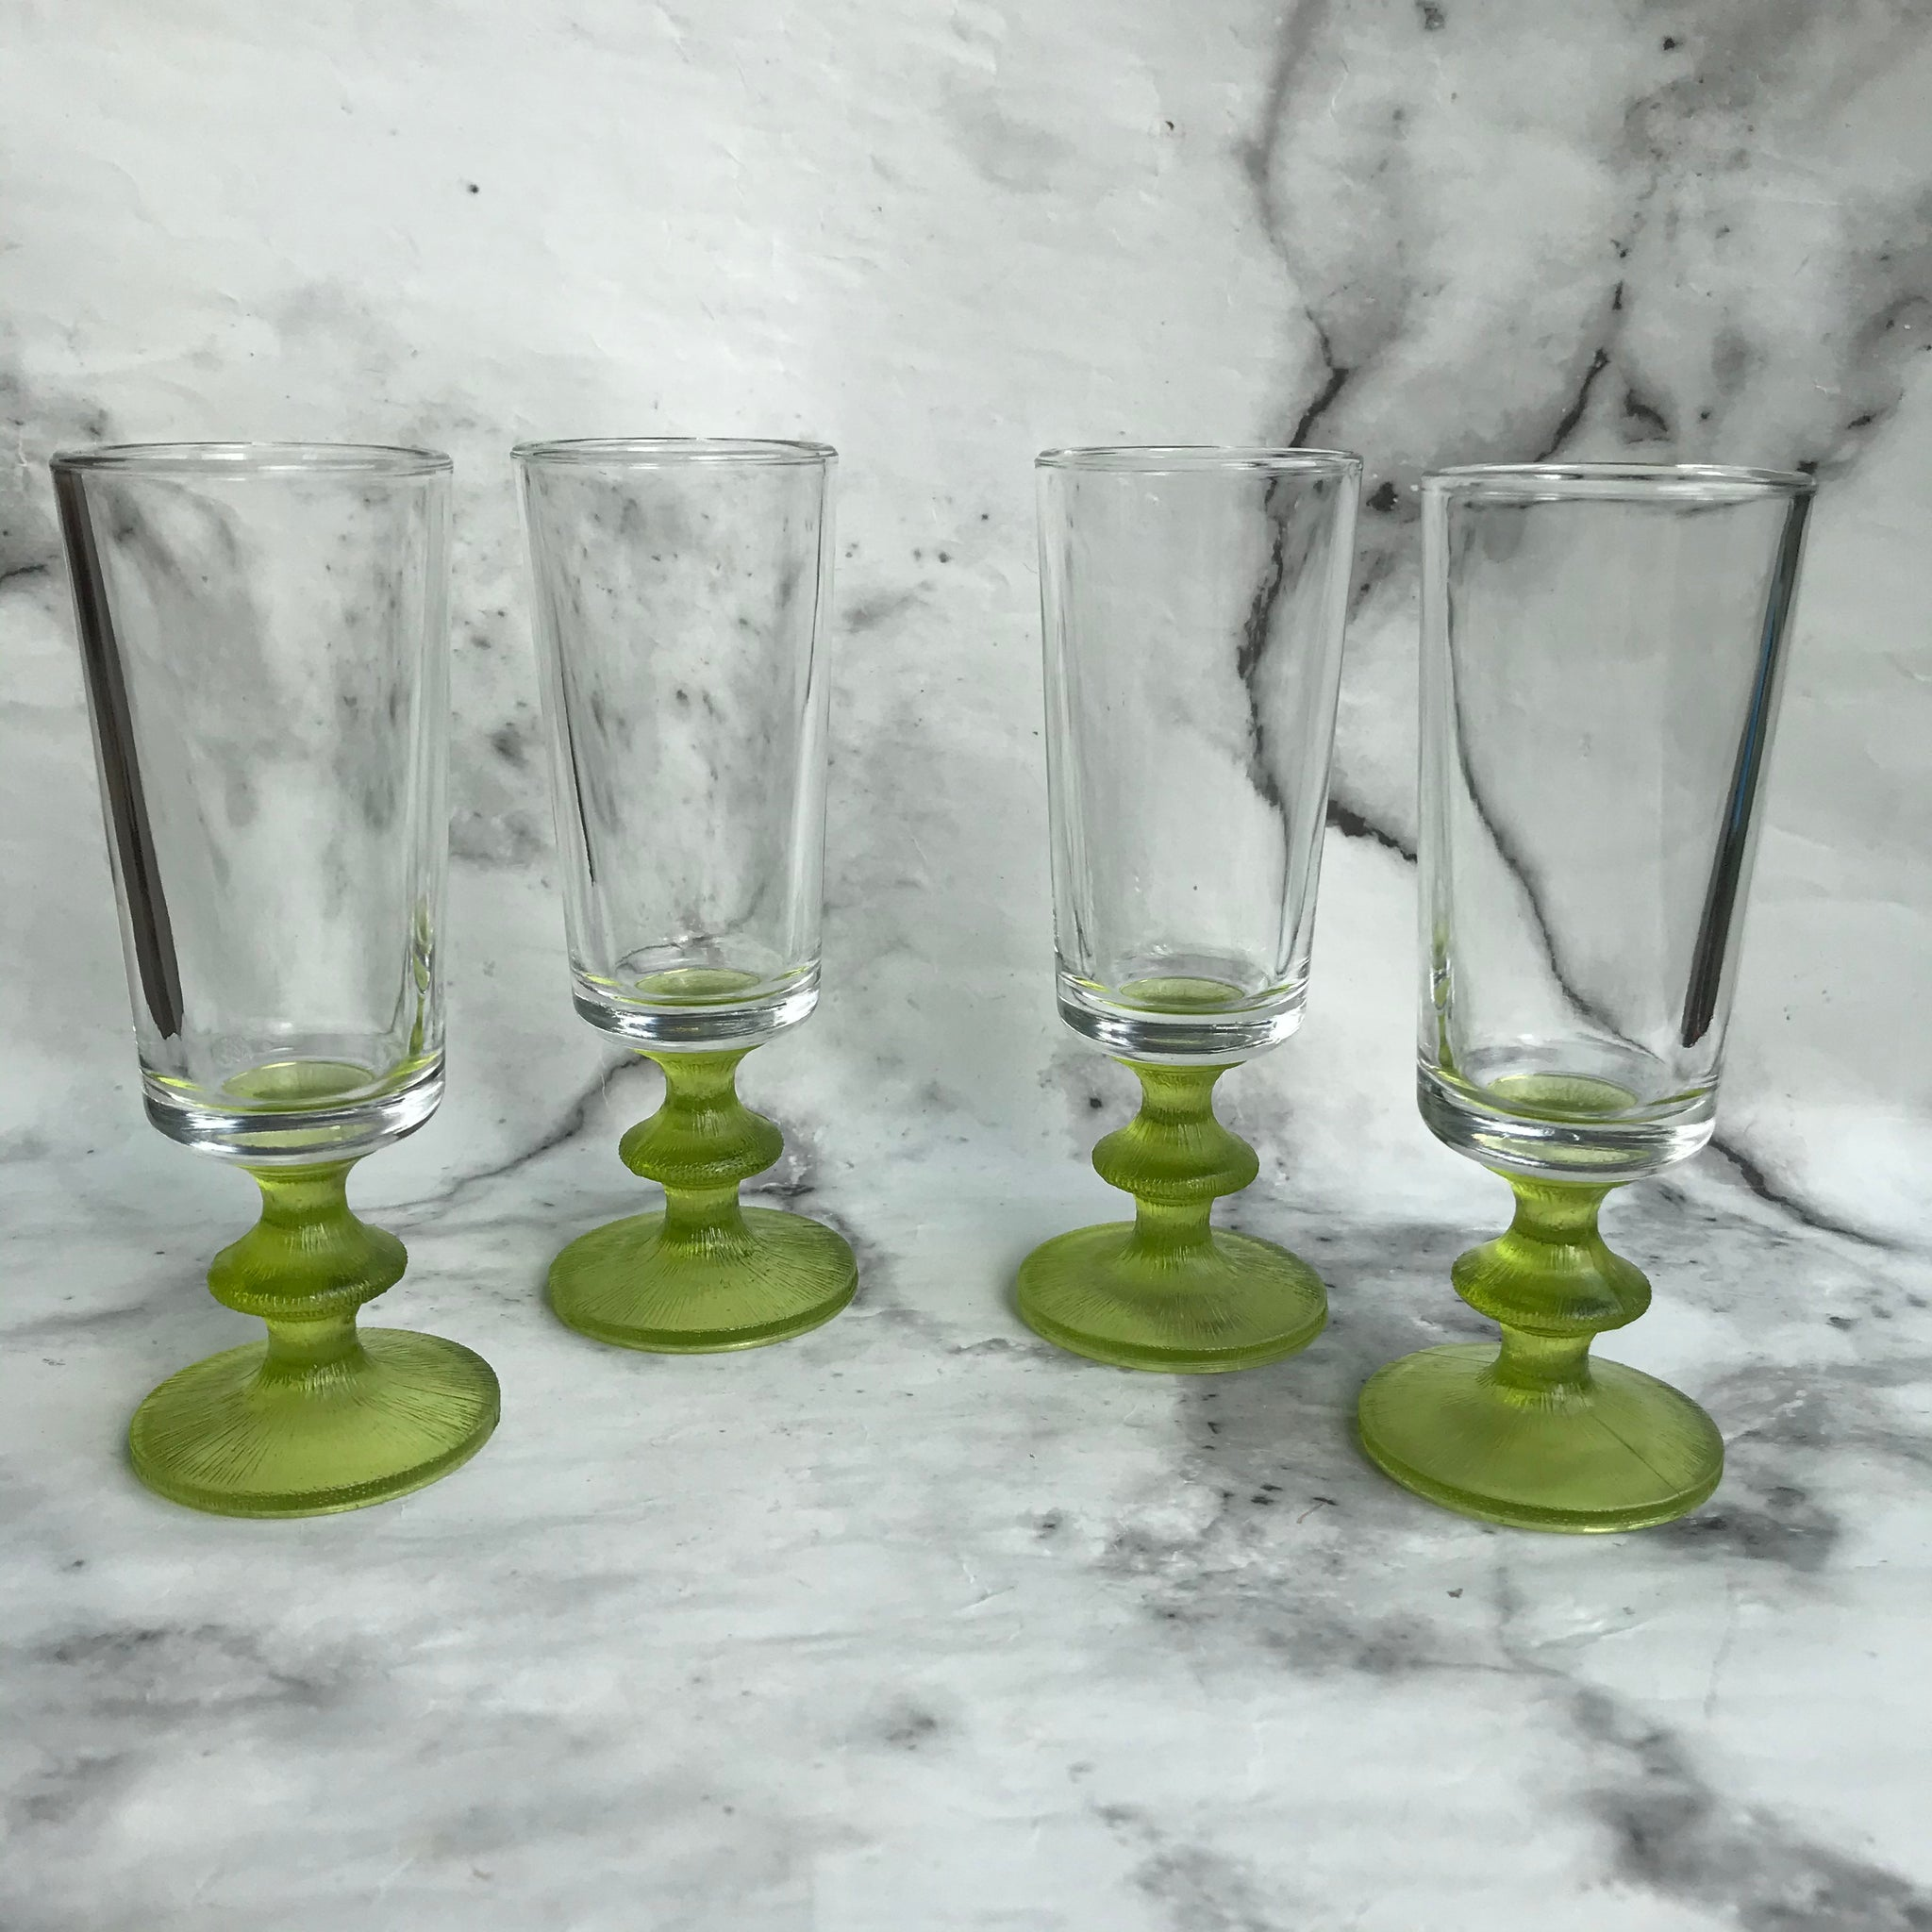 Four sherry glasses with green bulbous textured stems and clear slender bowls